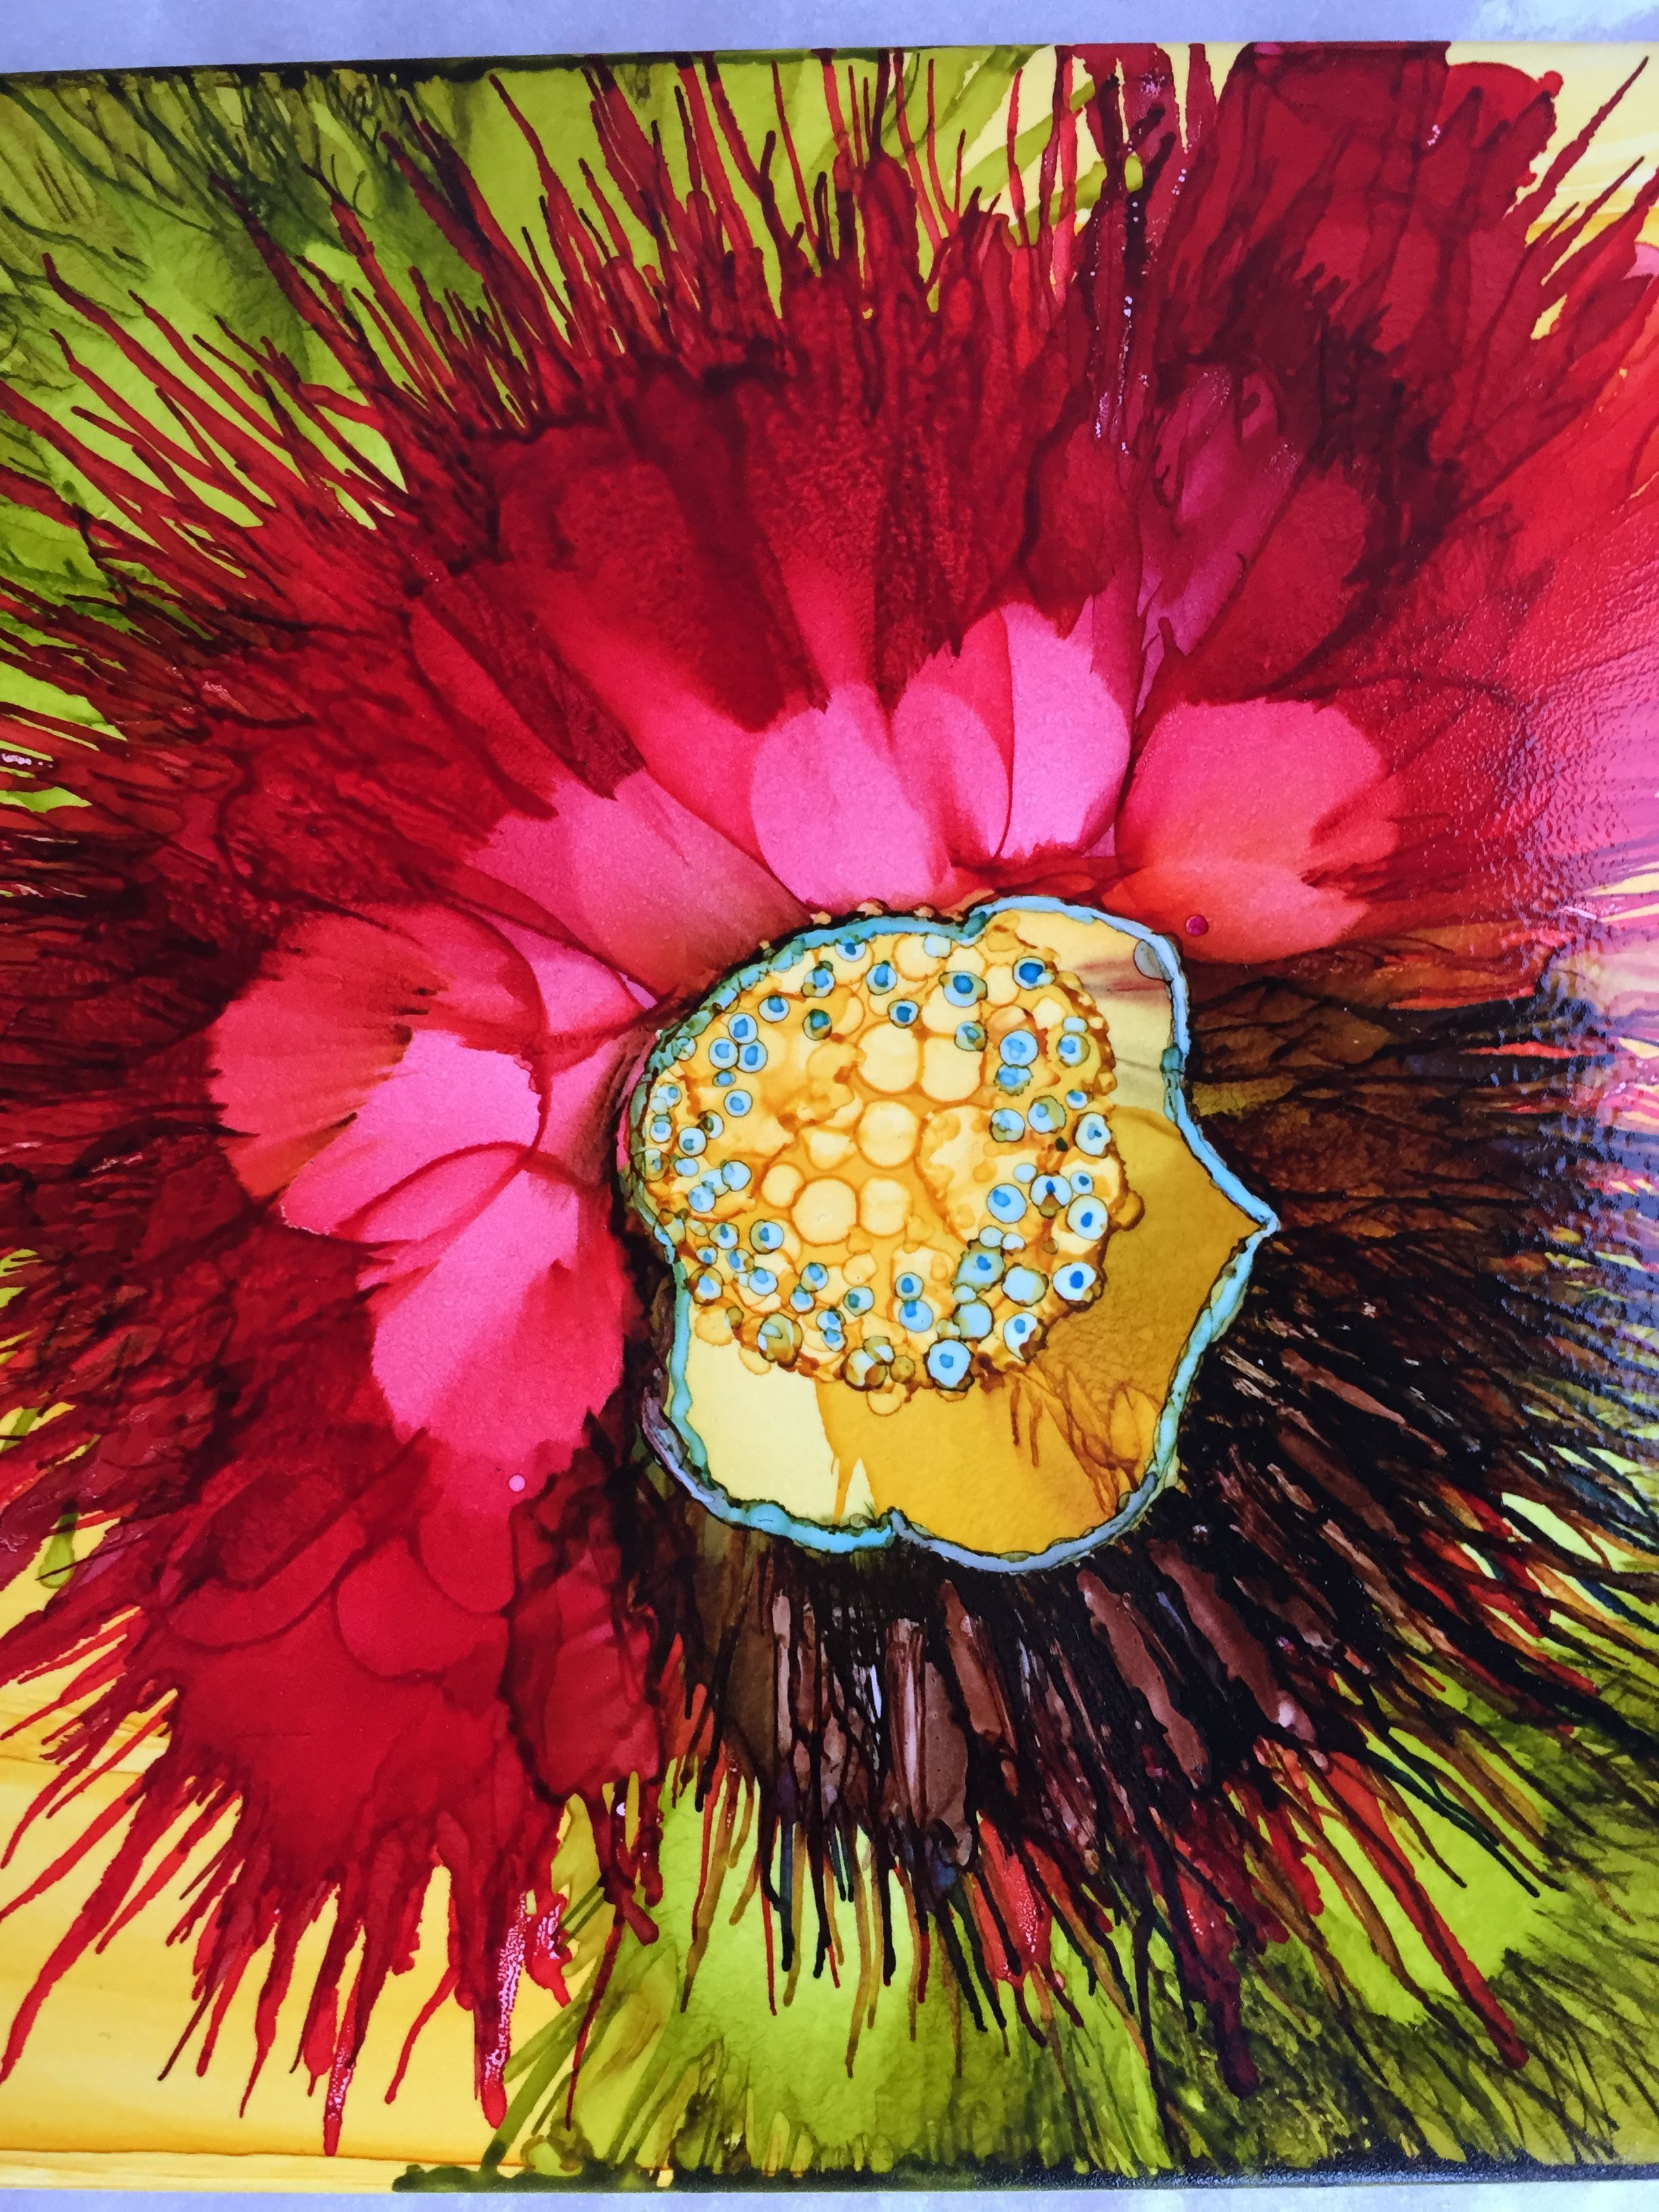 Flowerscaping On Tile Using Alcohol Inks My Creativity Blooms Painting